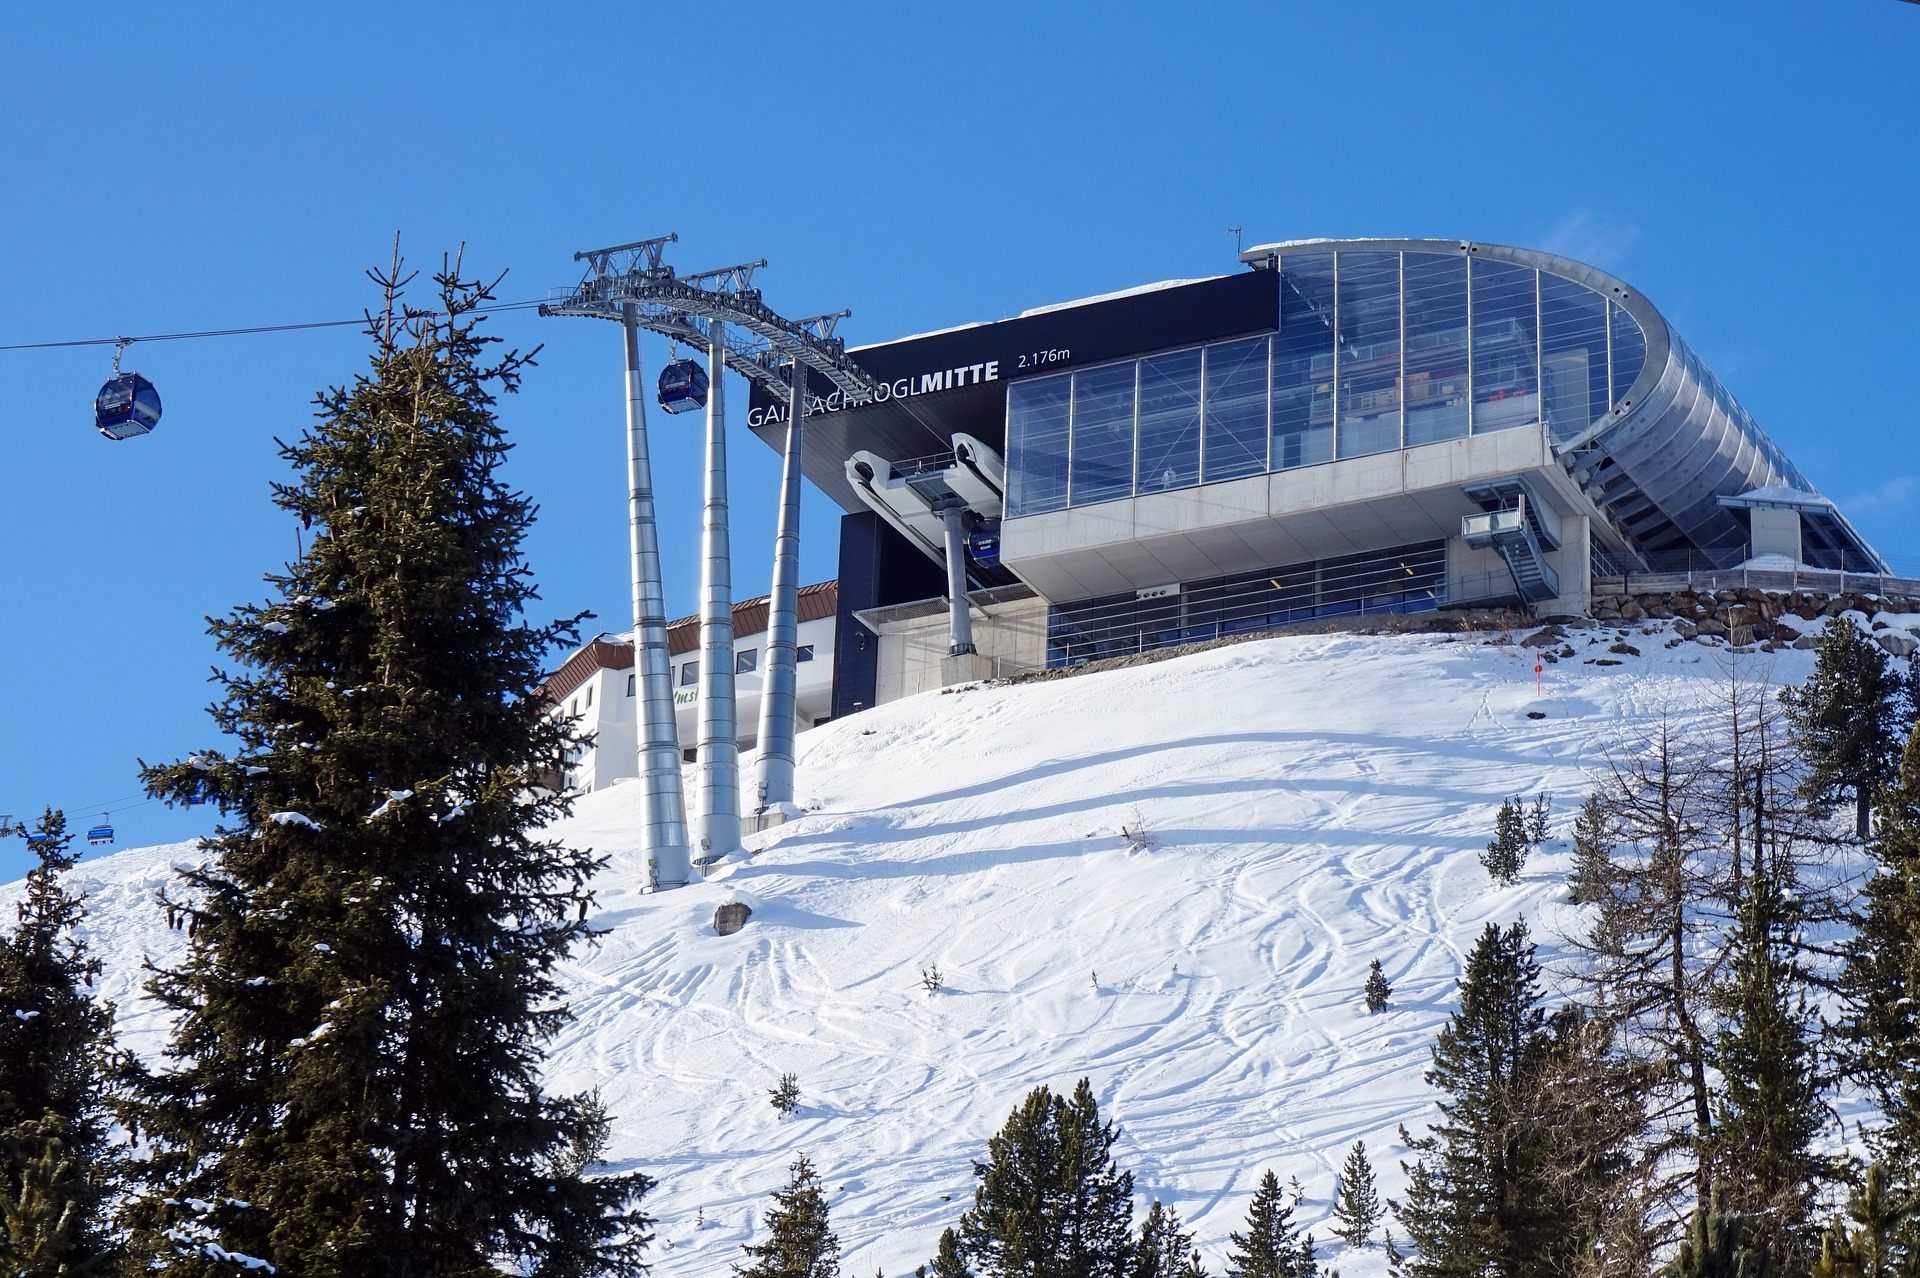 A snowy slope with a ski lift. For a post about group sex and the slippery slope fallacy.